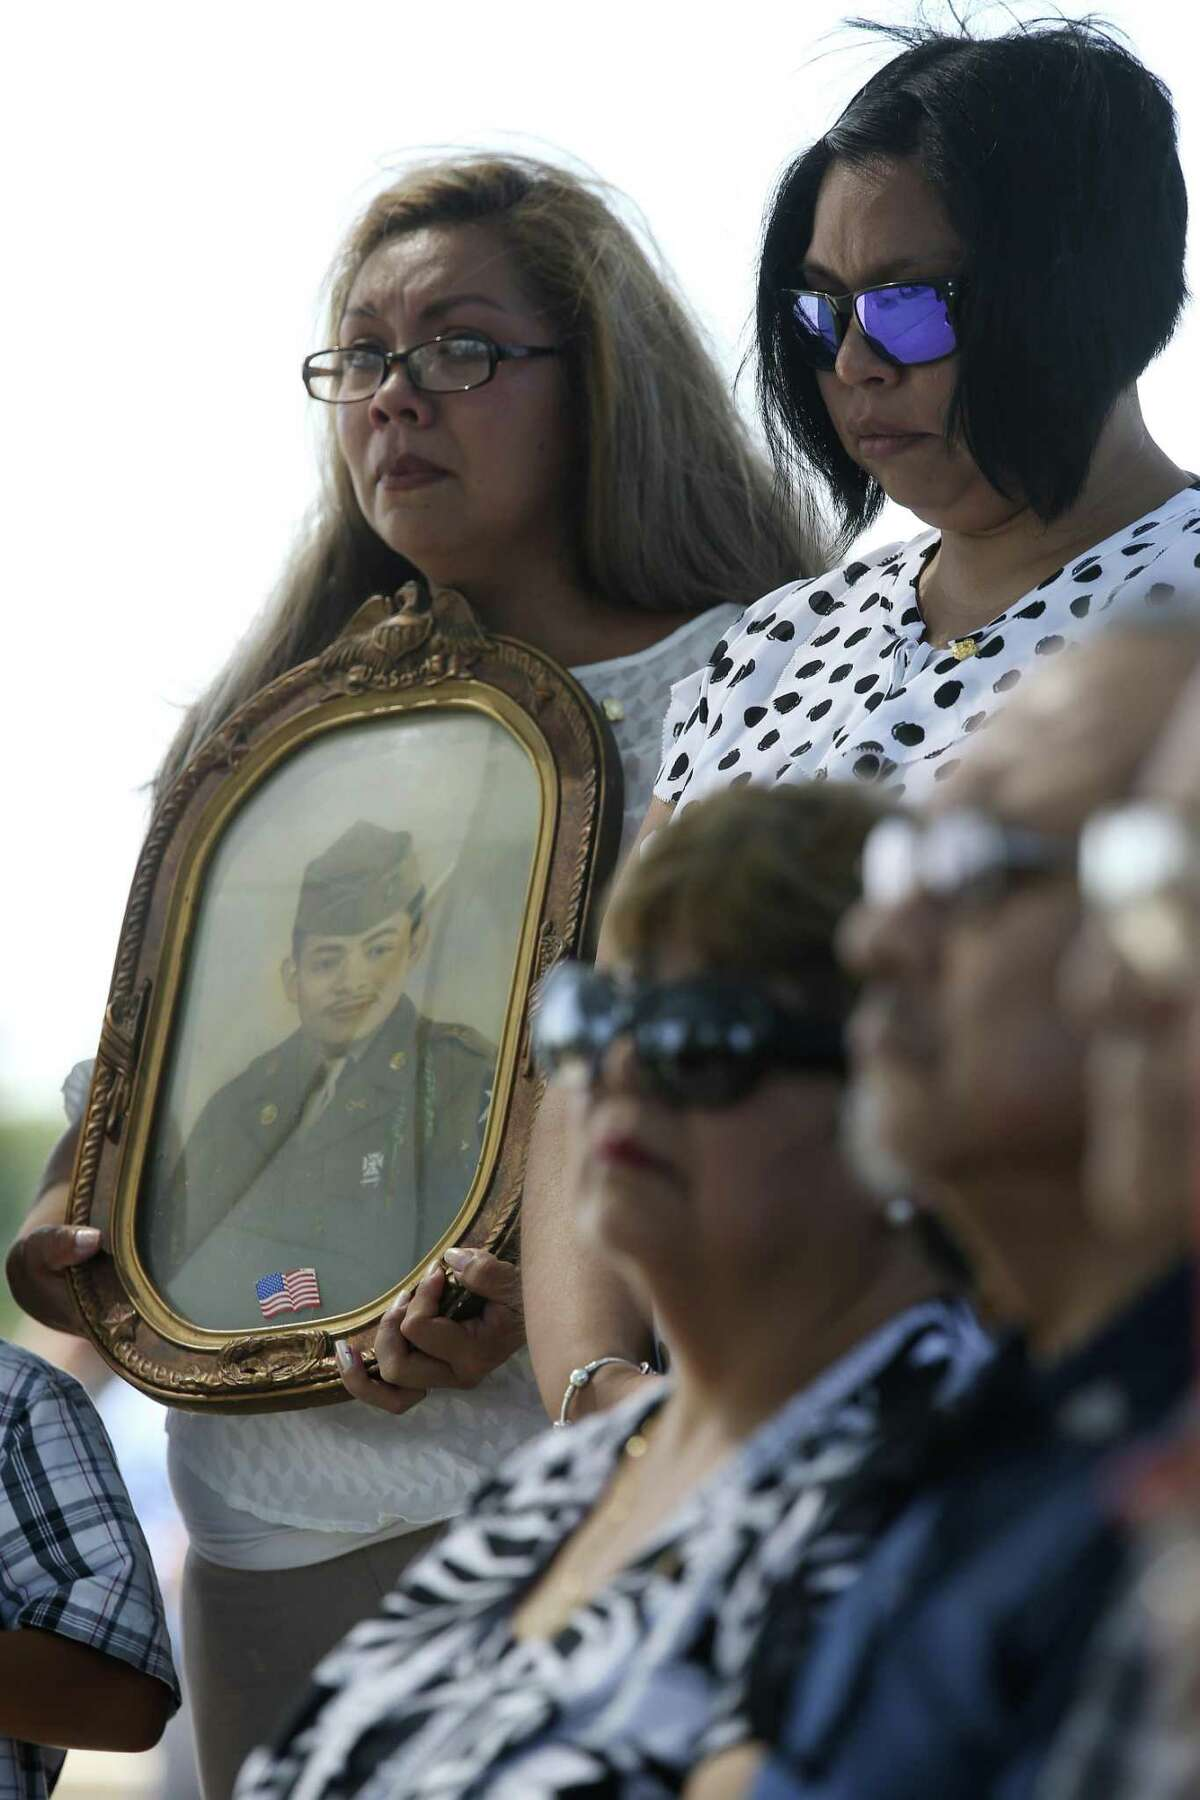 Melanie Sandoval Dacosta holds a portrait of her grandfather, U.S. Army Cpl. Frank Luna Sandoval, during his burial ceremony at Fort Sam Houston National Cemetery, Tuesday, July 11, 2017. Sandoval was missing action and presumed dead since the Korean War. Sandoval was 20-years-old when he was take as a prisoner of war and died of malnutrition. Sandoval was reported missing in action on Feb. 13, 1951 and declared dead over two and a half years later. He body was returned to U.S. custody in 1954 and he was buried as an unknown soldier in Hawaii for decades. The family was notified of his identification early this year.